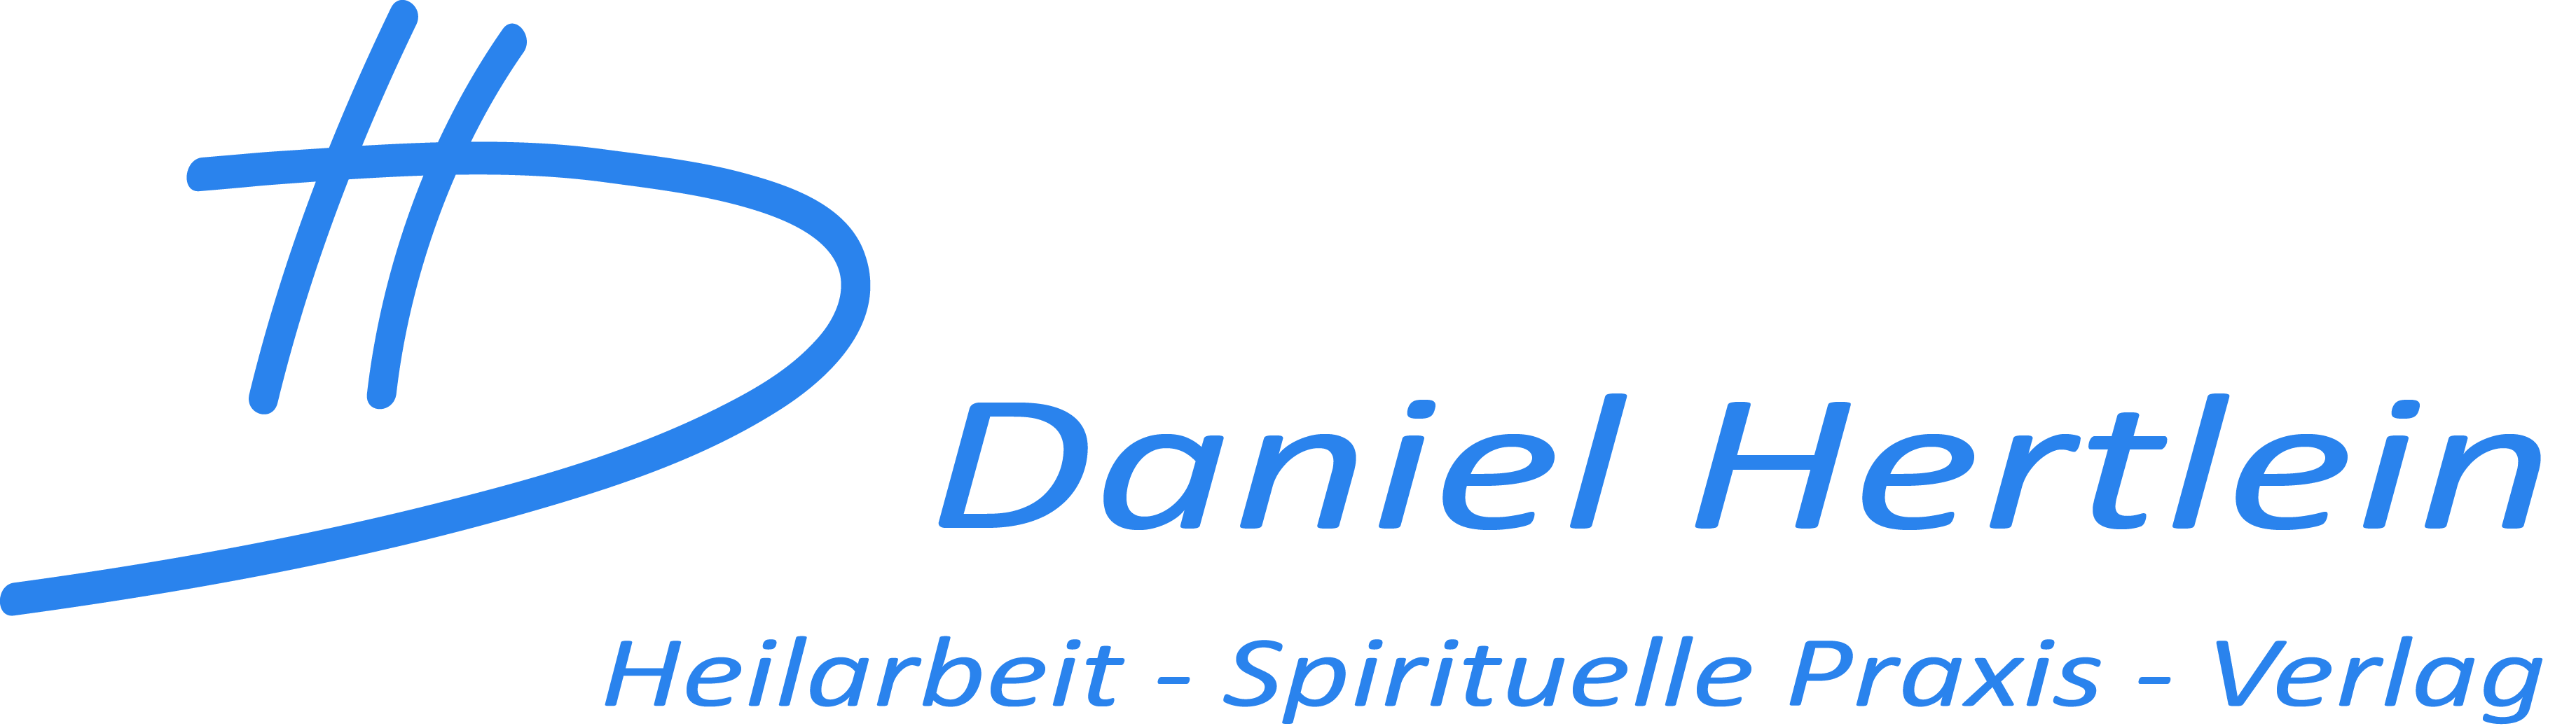 Daniel Hertlein Shop